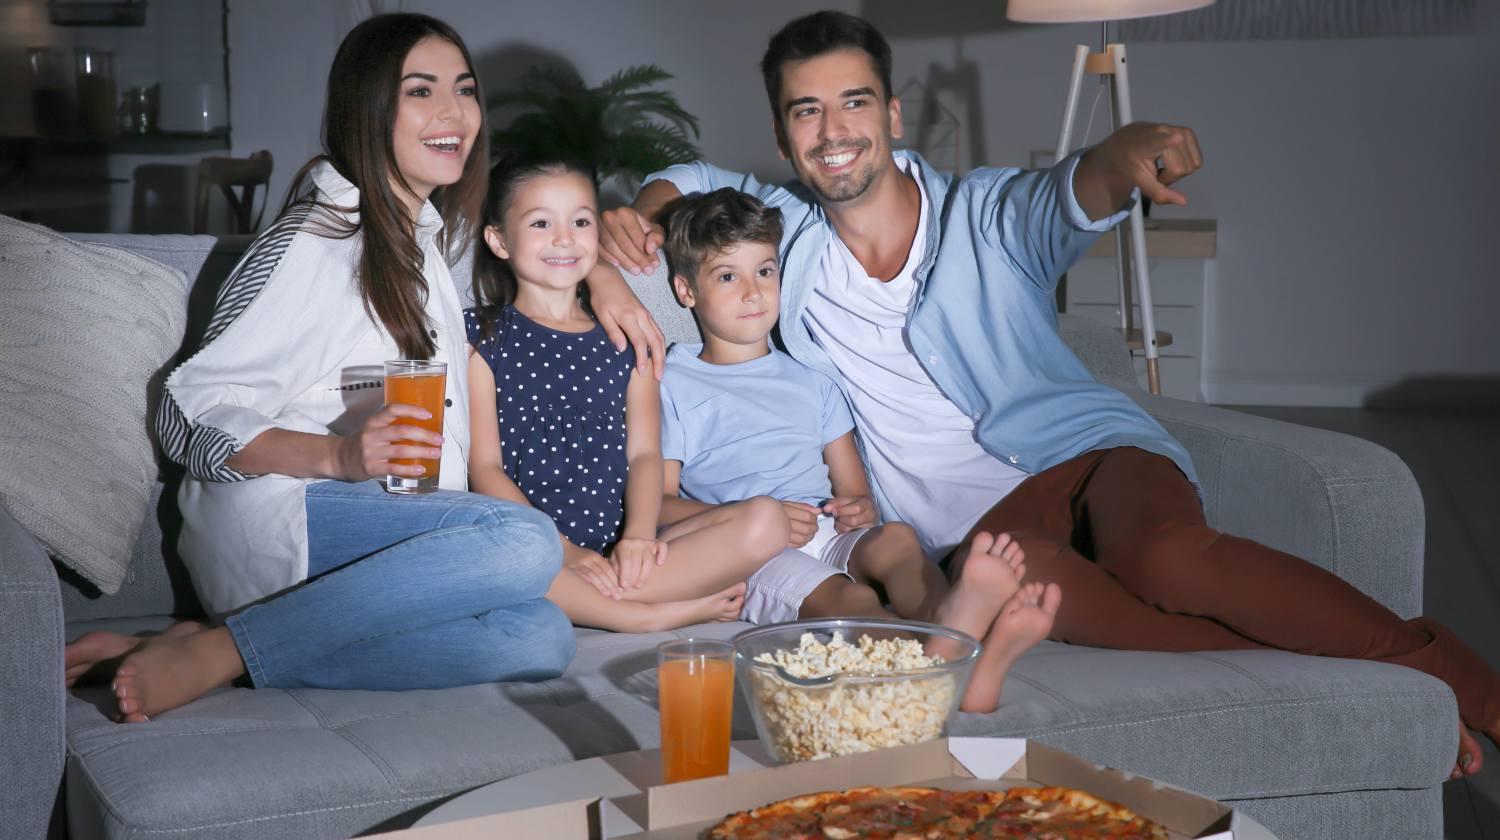 Happy family watching TV on sofa at night | Ways to Make Family Movie Night Even More Fun | movie night | movie night ideas | Featured